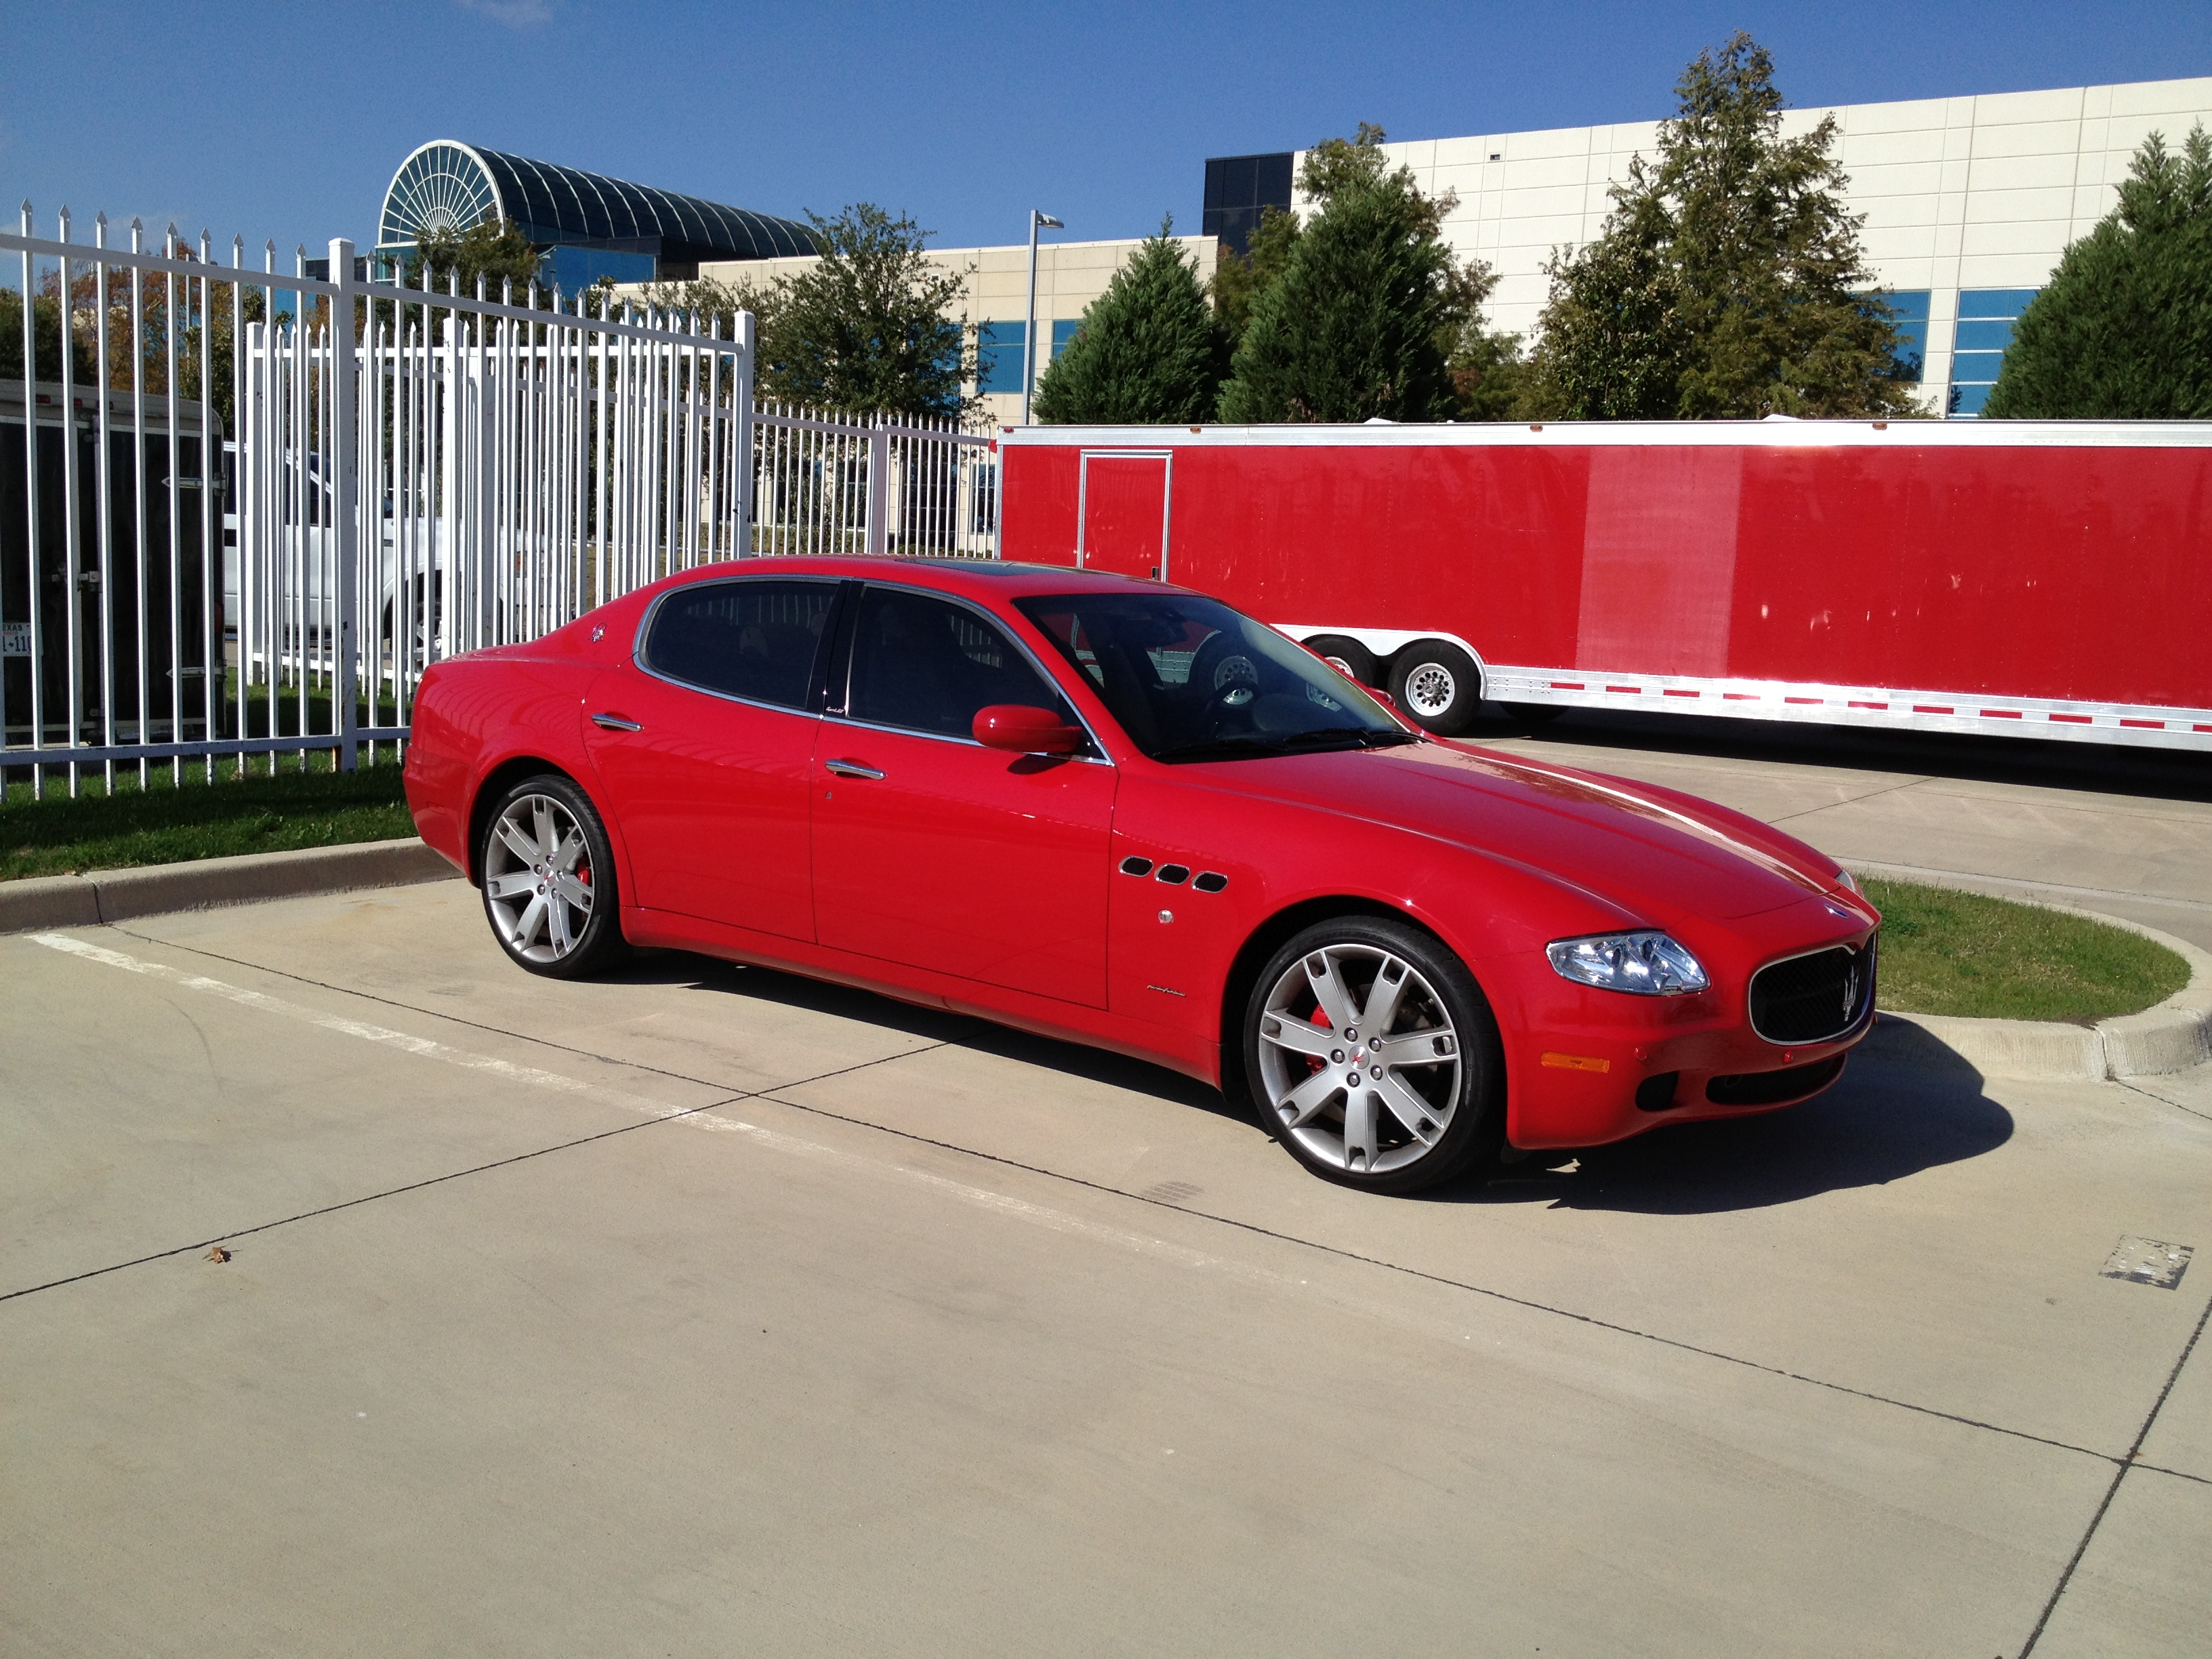 should i sell trade my car for this maserati bmw m5 forum and m6 forums. Black Bedroom Furniture Sets. Home Design Ideas